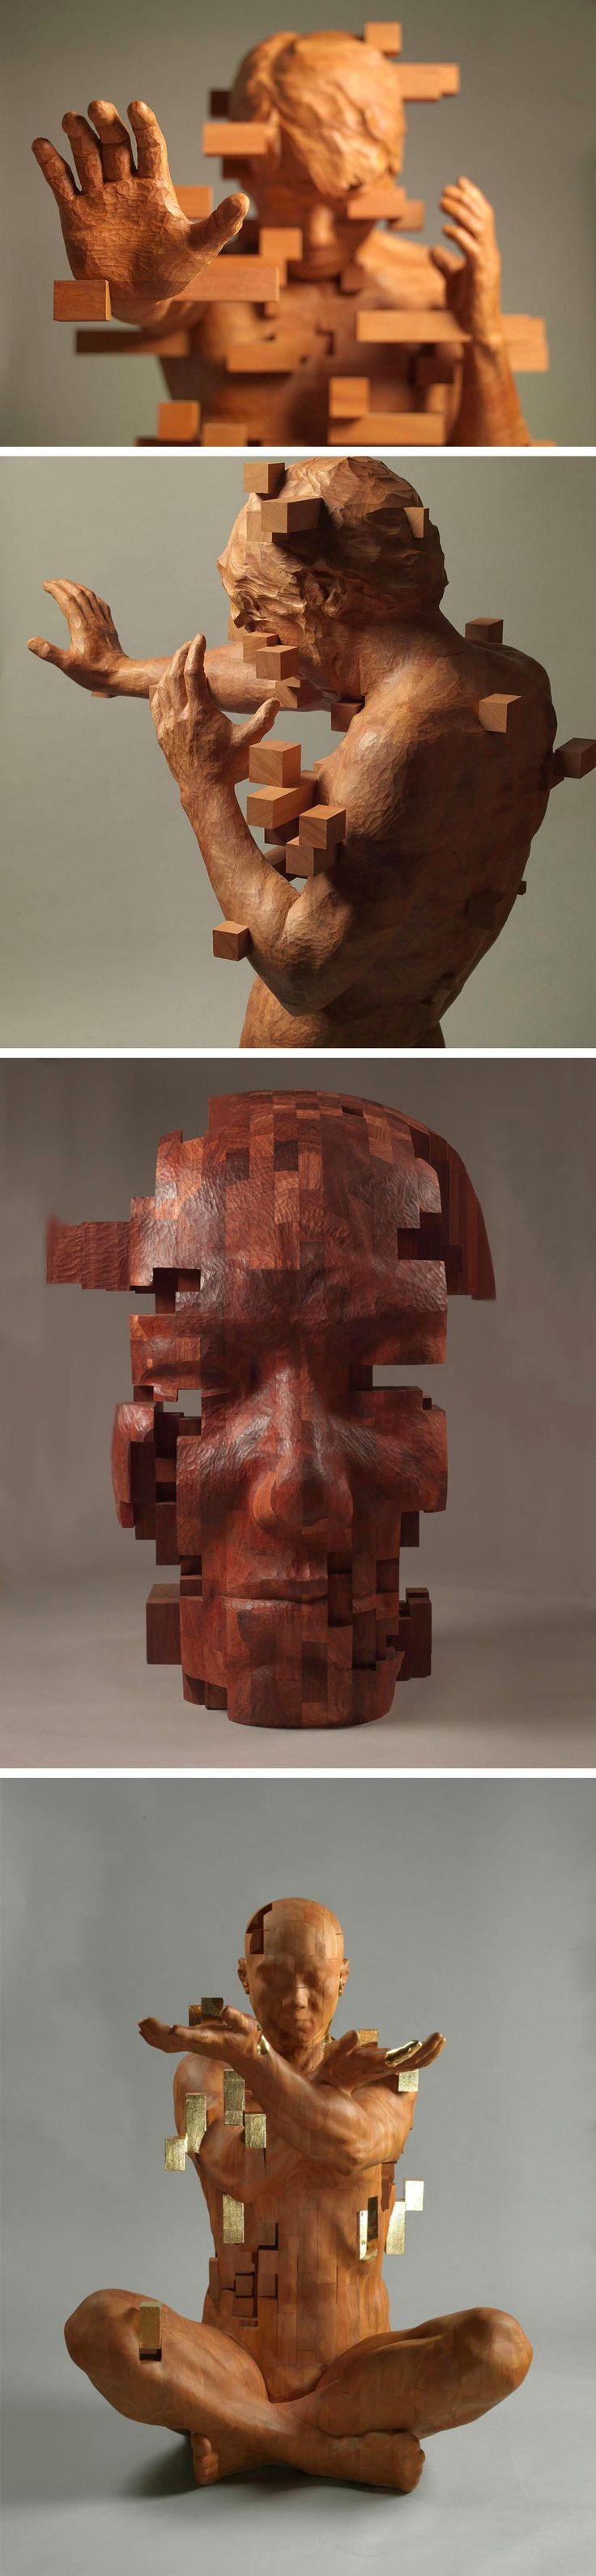 完形與解構,帶來動態的創造過程。 Pixelated Wood Sculptures Carved by Hsu Tung Han